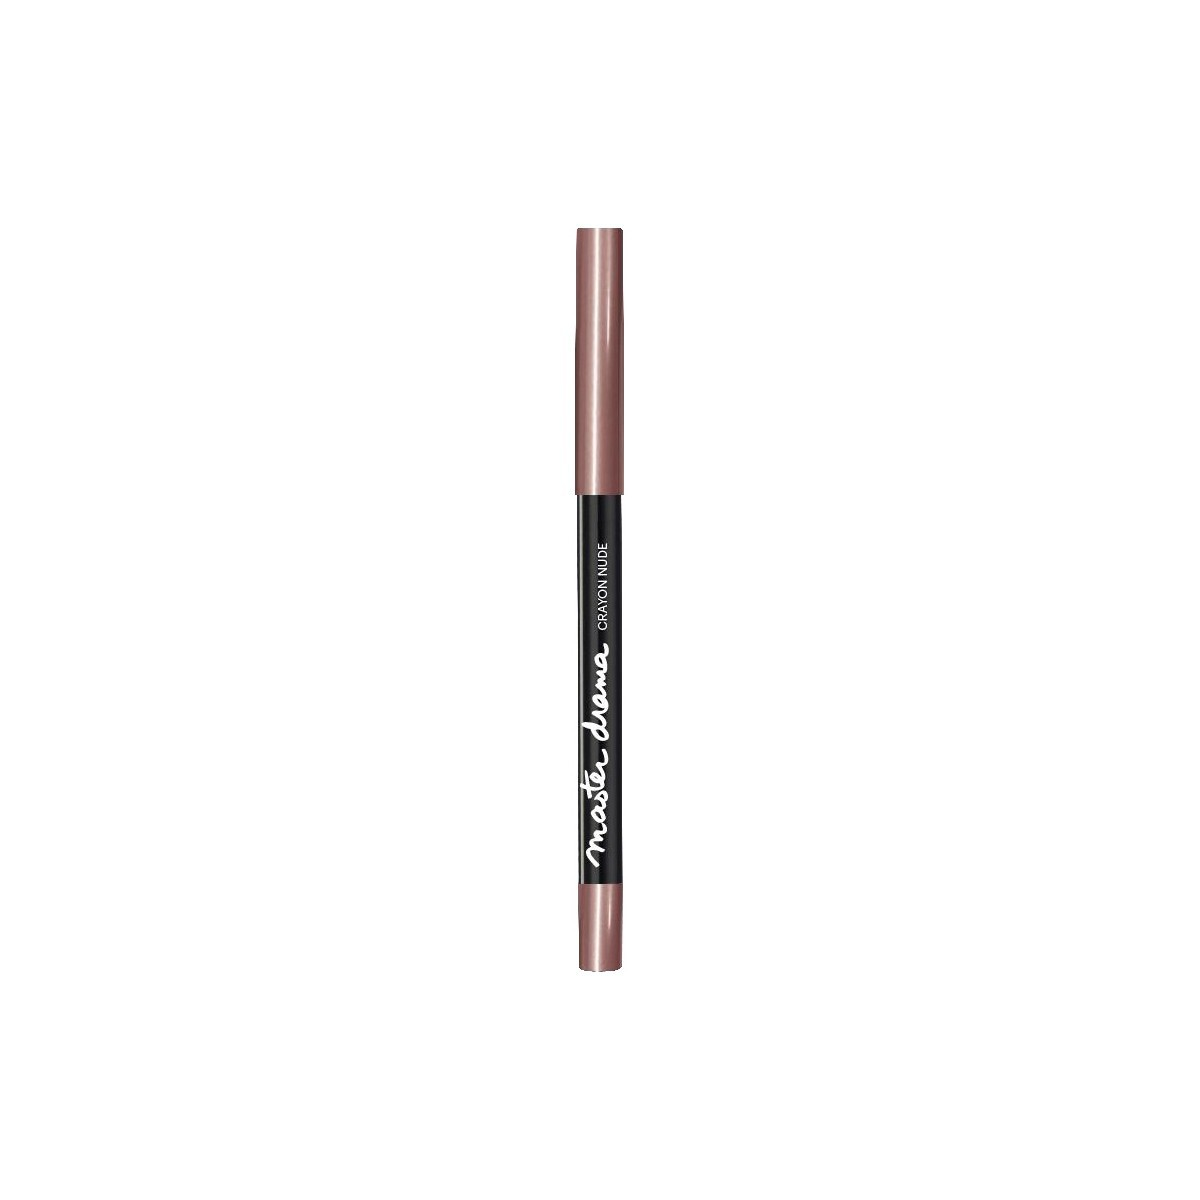 Maybelline Masterdrama Crayon Nude 020 Rose Pearl